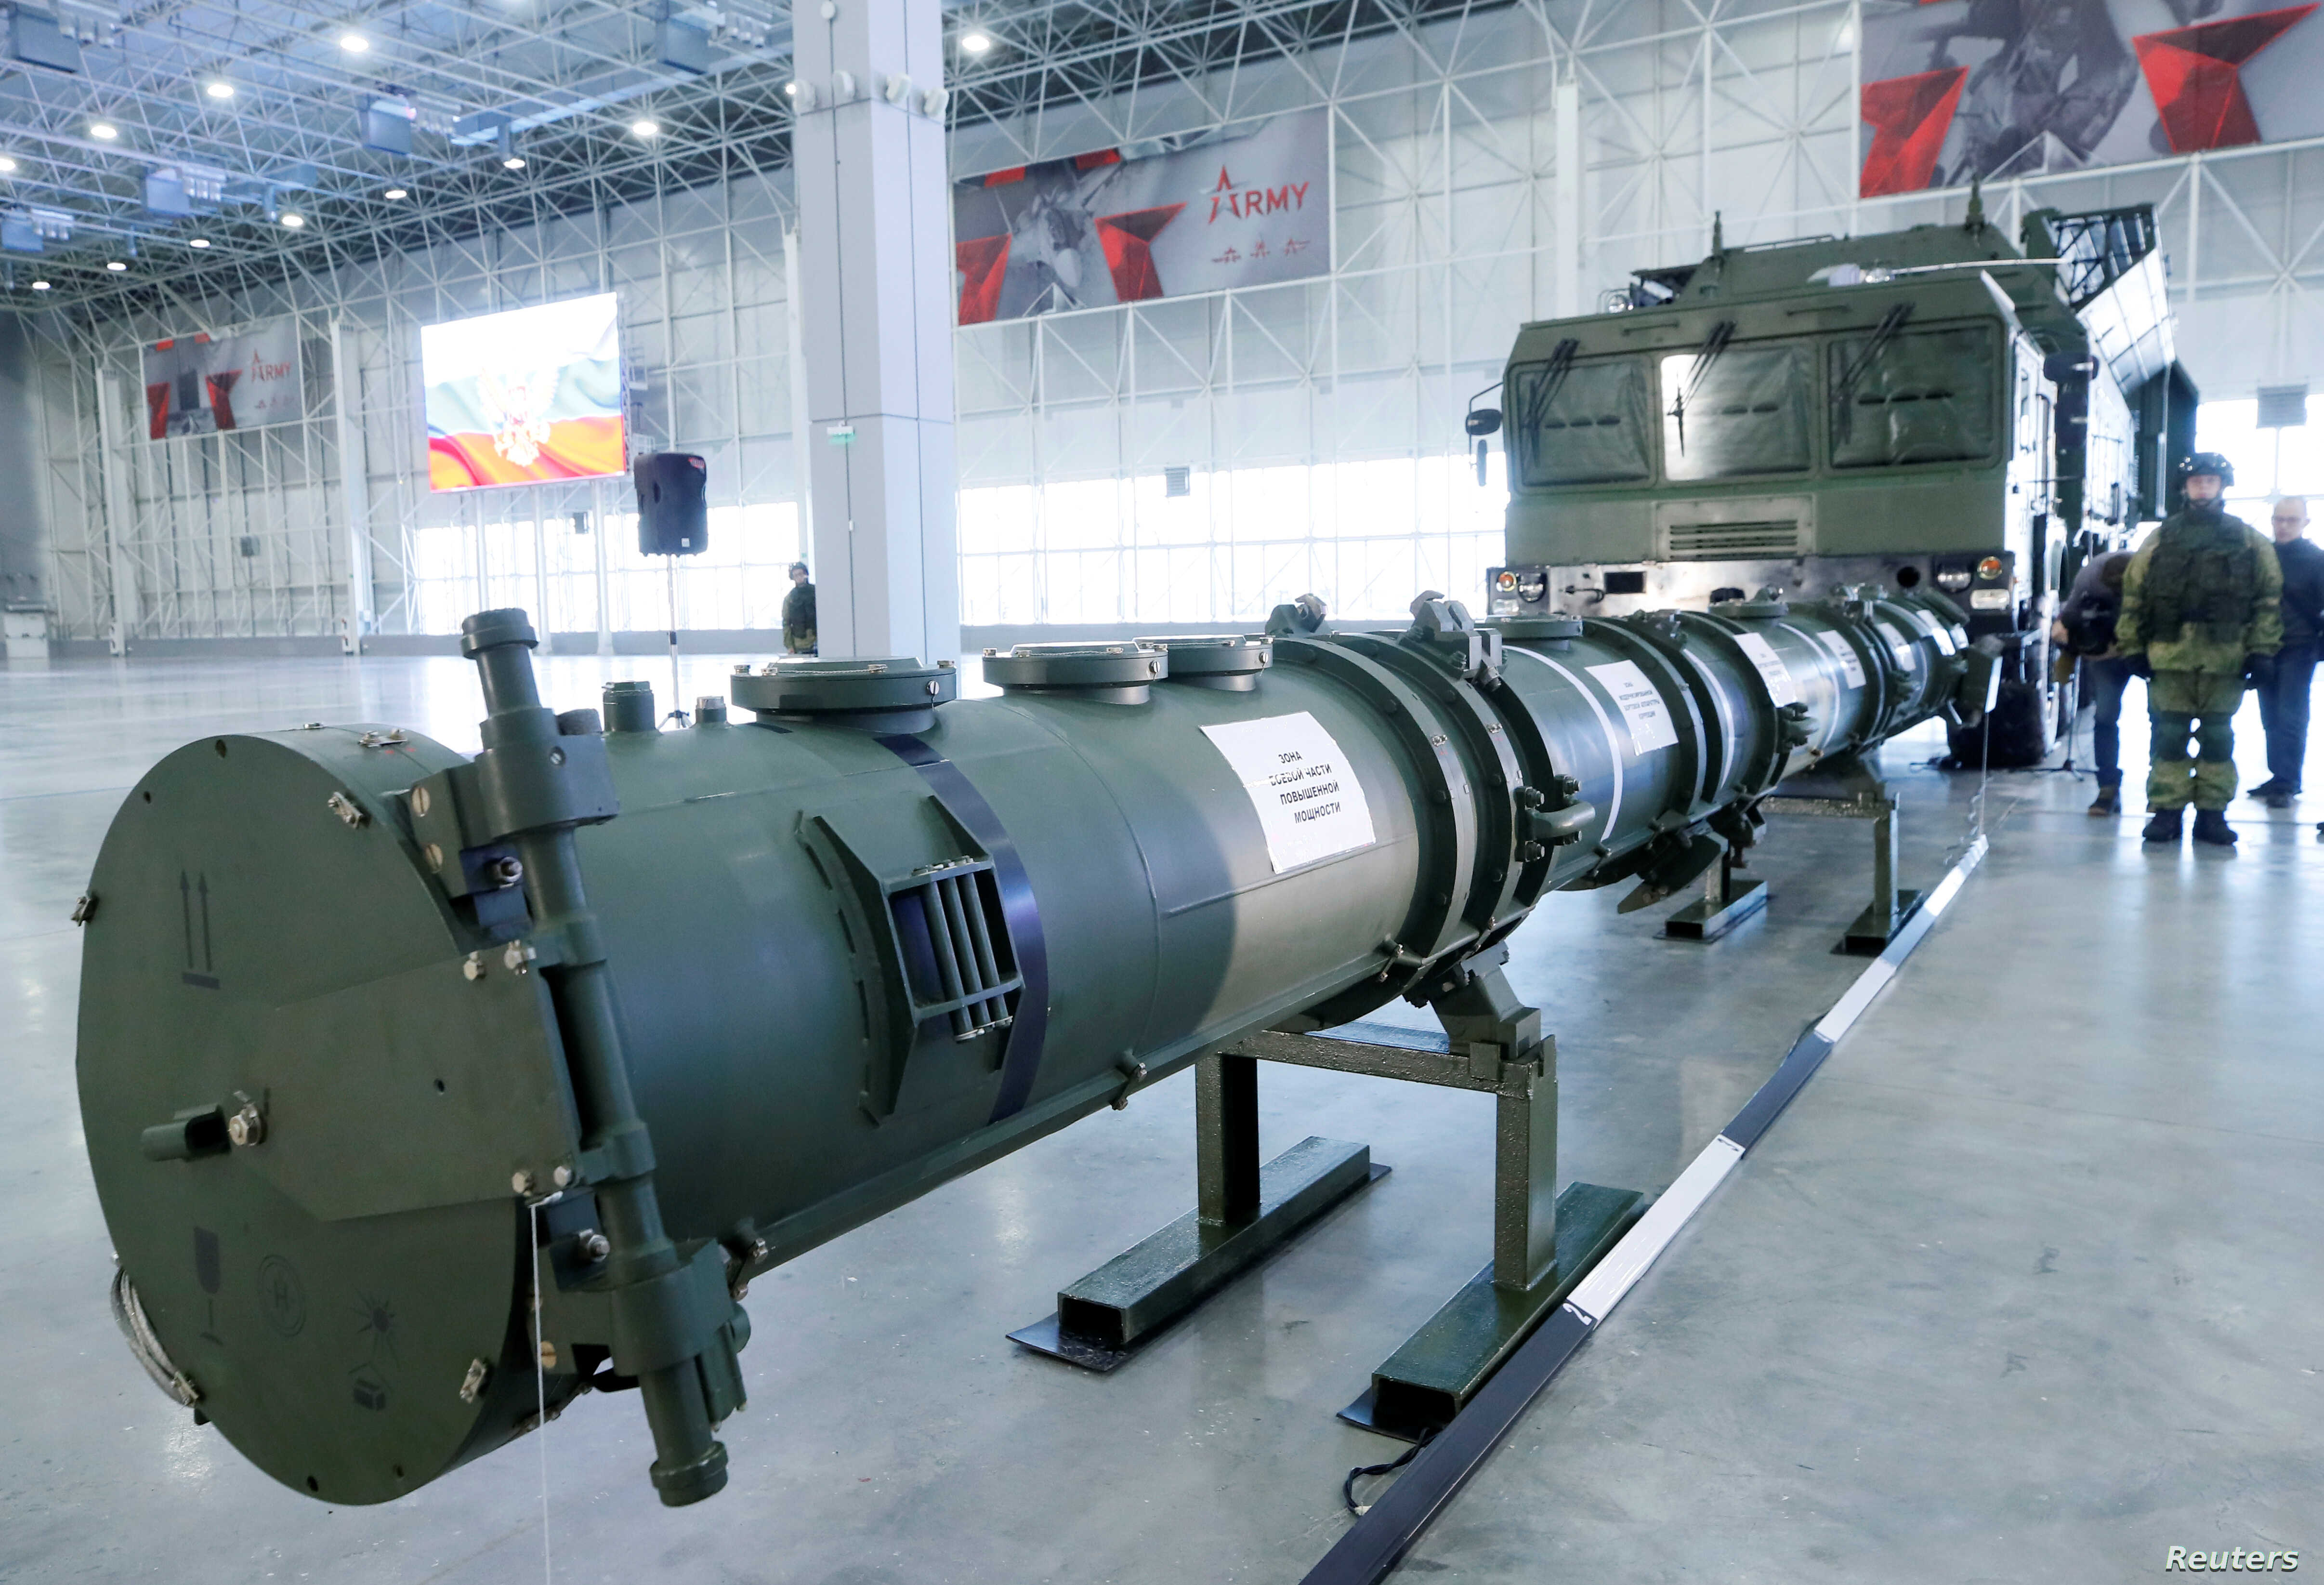 Russia Presents Info on Missile US Says Violates Pact   Voice of